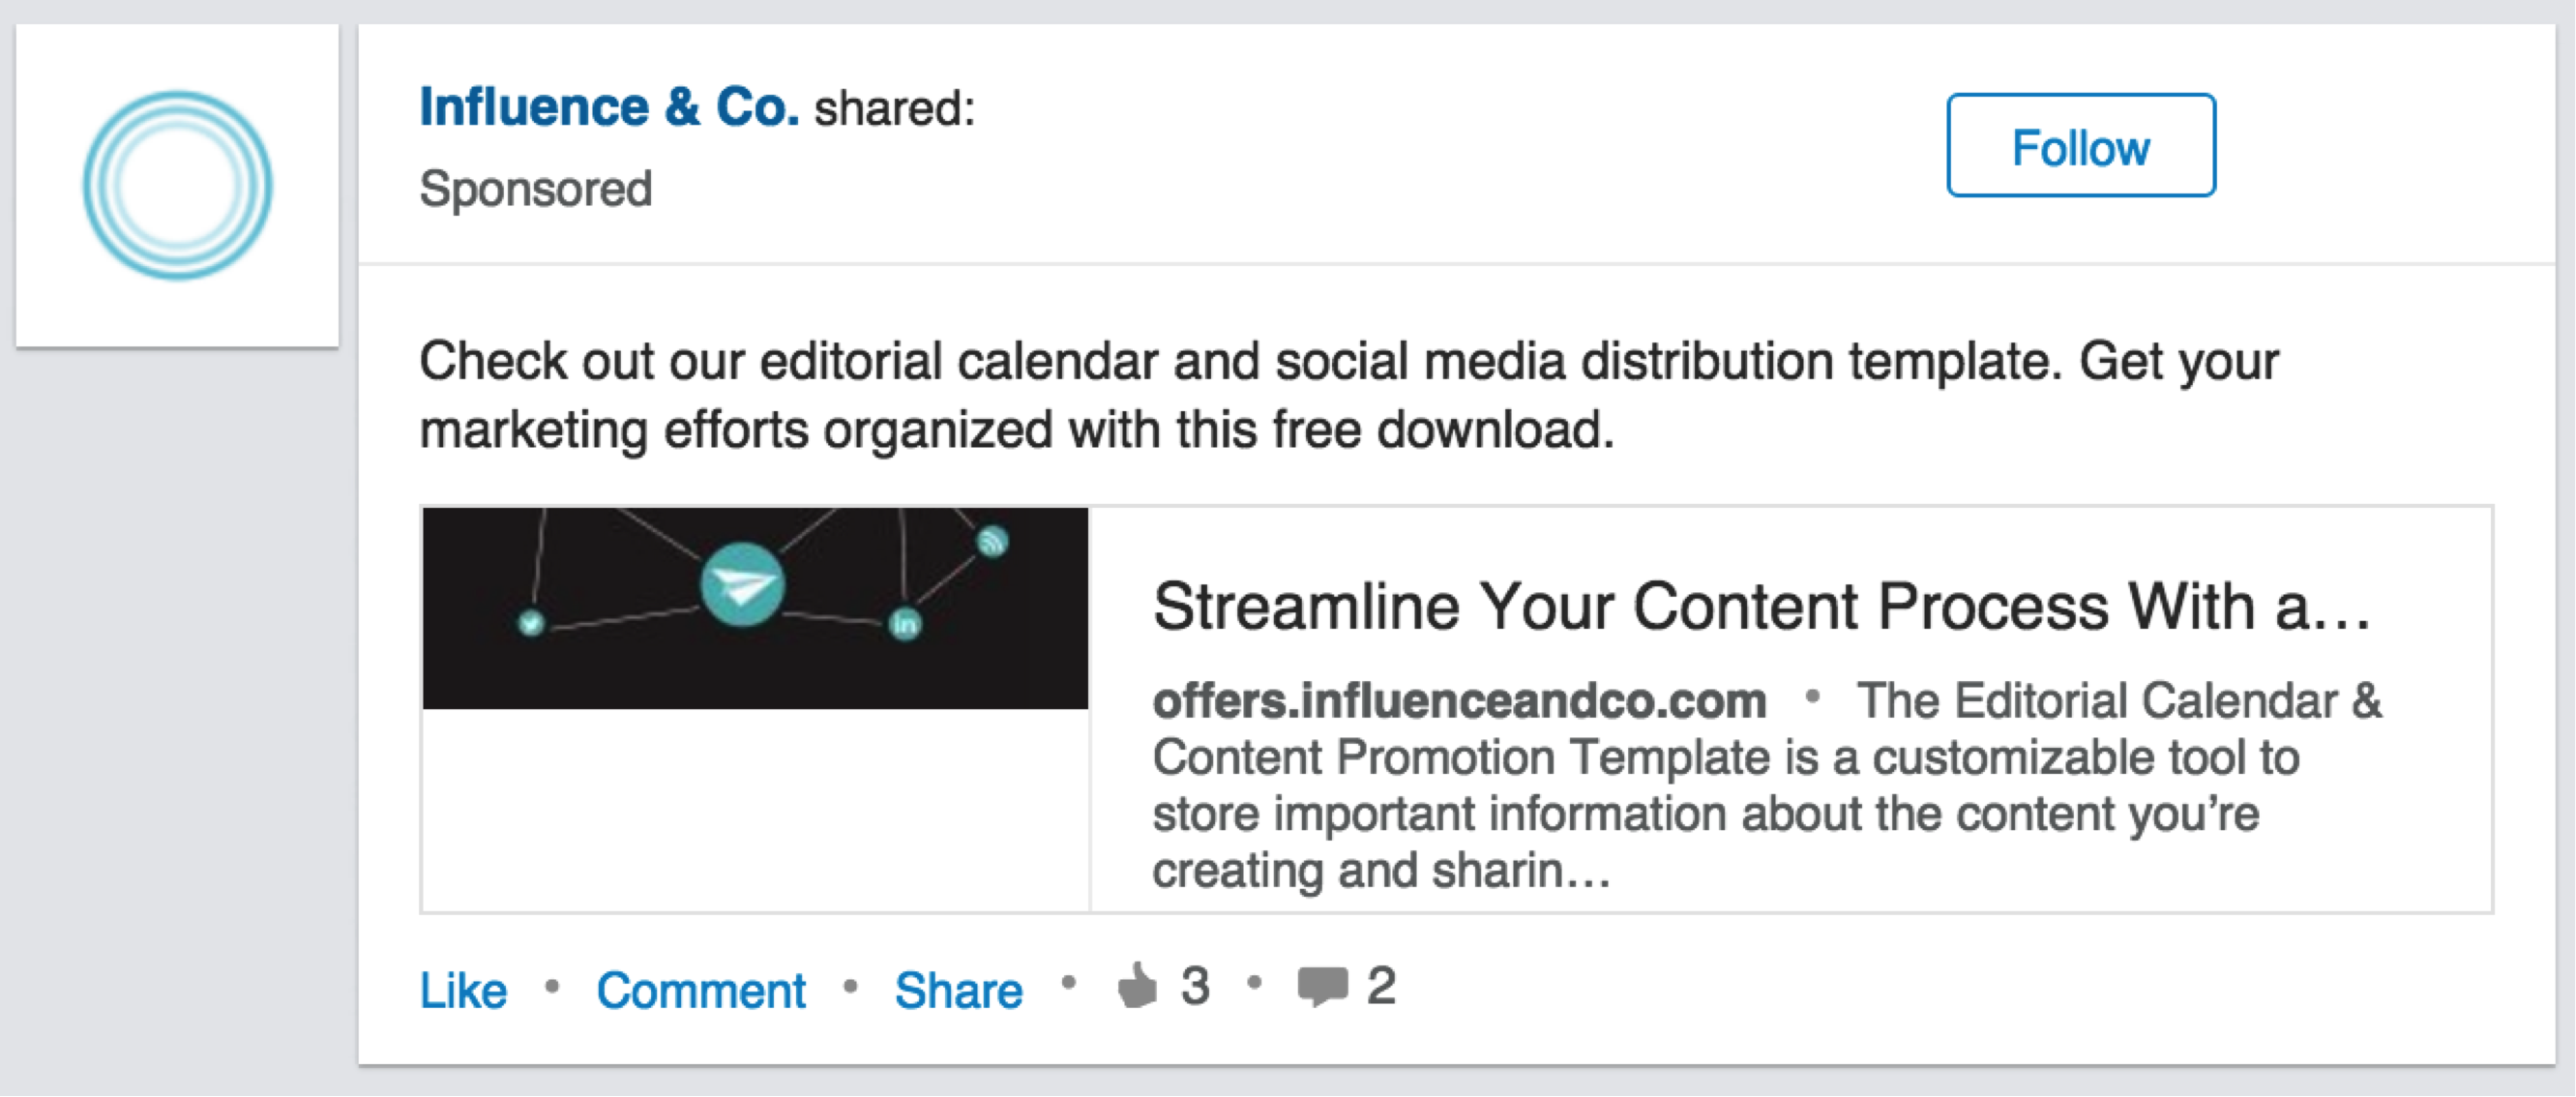 LinkedIn_Post_Influence_and_Co.png